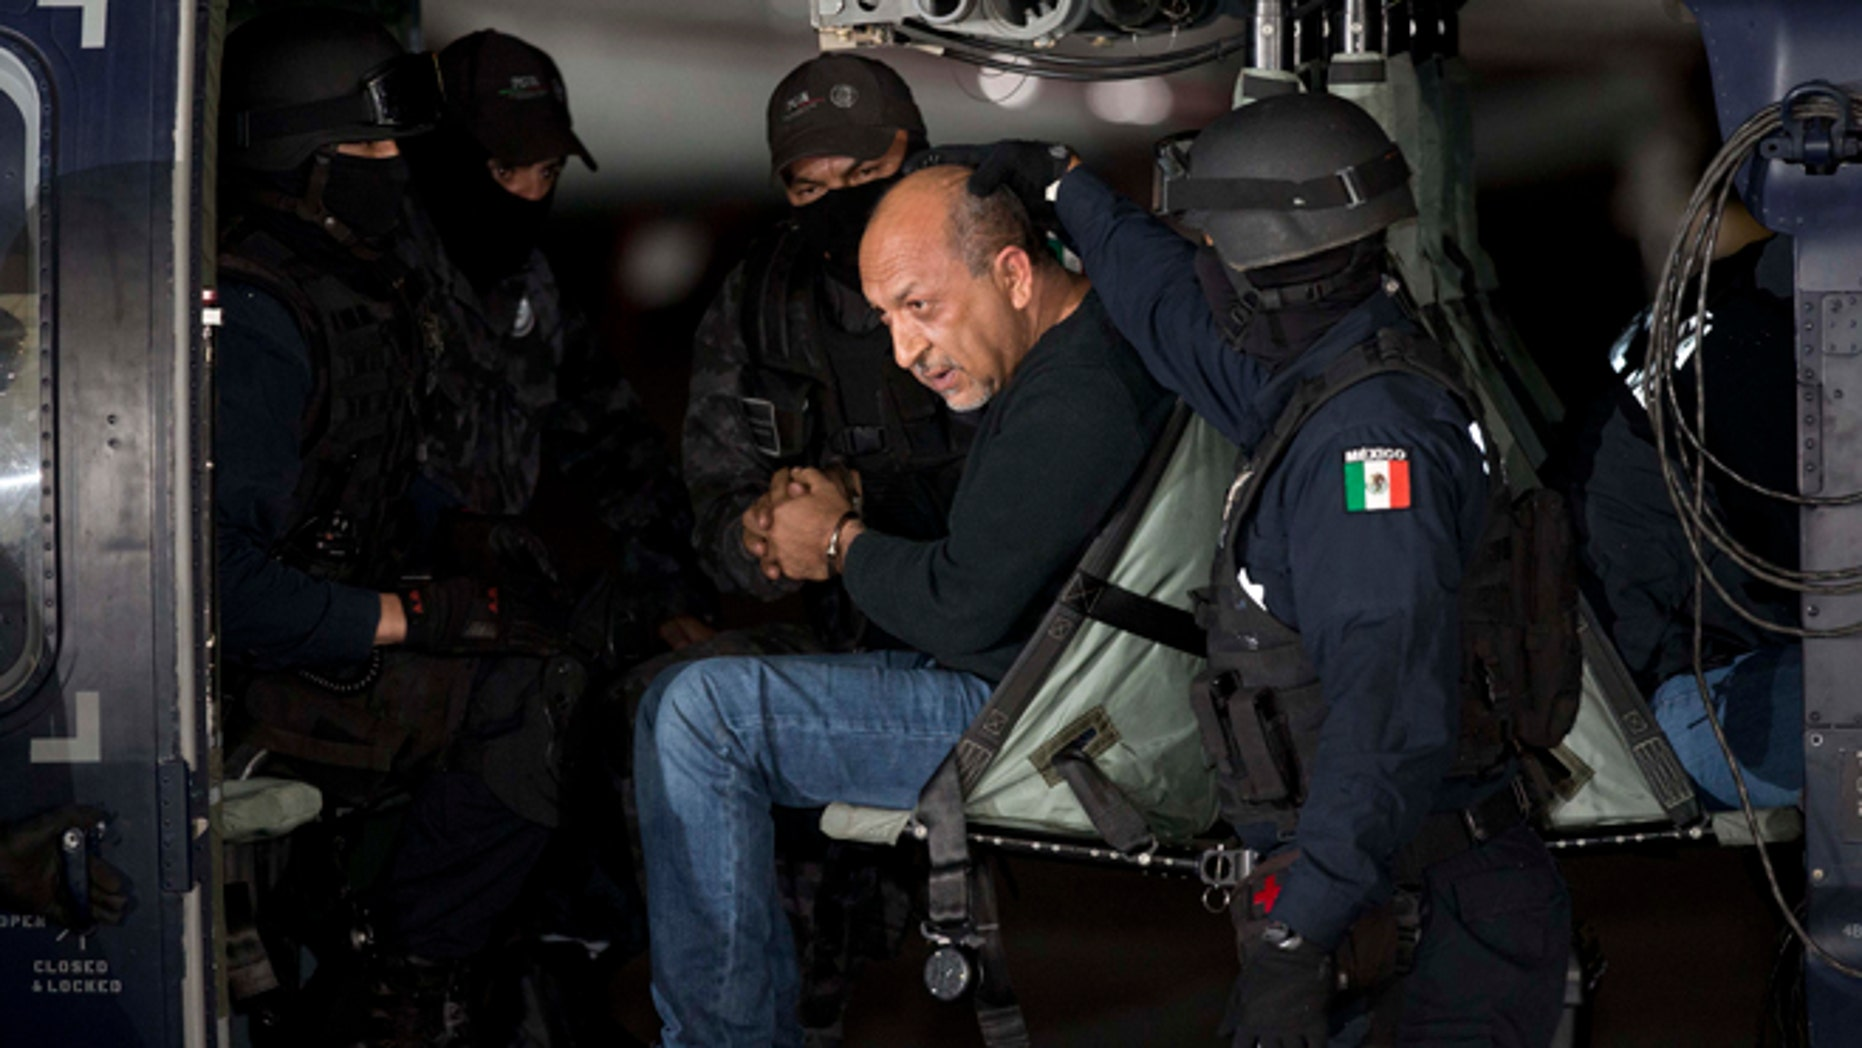 "ADDS PHOTOGRAPHER'S BYLINE - Federal police escort who they identify as Servando ""La Tuta"" Gomez,"" leader of the Knights Templar cartel, as he sits inside helicopter at the Attorney General's Office hangar in Mexico City, Friday, Feb. 27, 2015. Gomez, a former school teacher who became one of Mexico's most-wanted drug lords as head of the Knights Templar cartel, was captured early Friday by federal police, according to Mexican officials. (AP Photo/Eduardo Verdugo)"